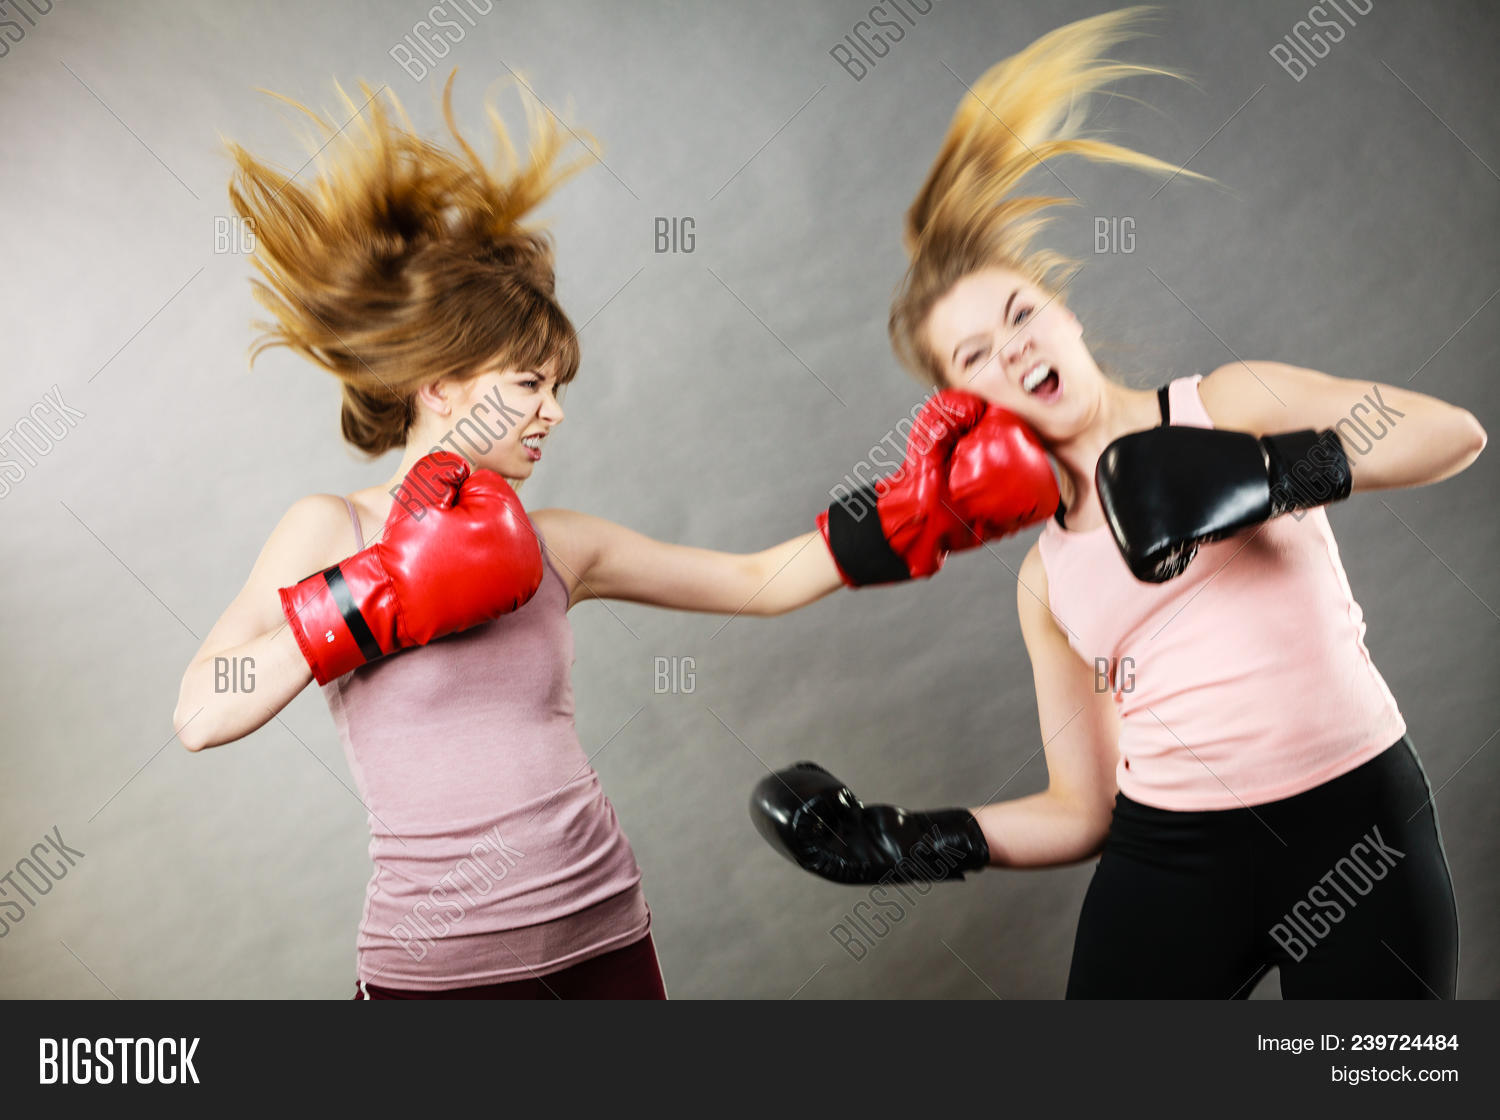 5505fa38b Two Agressive Women Wearing Boxing Gloves Having Argue Fight Being Mad At Each  Other. Female